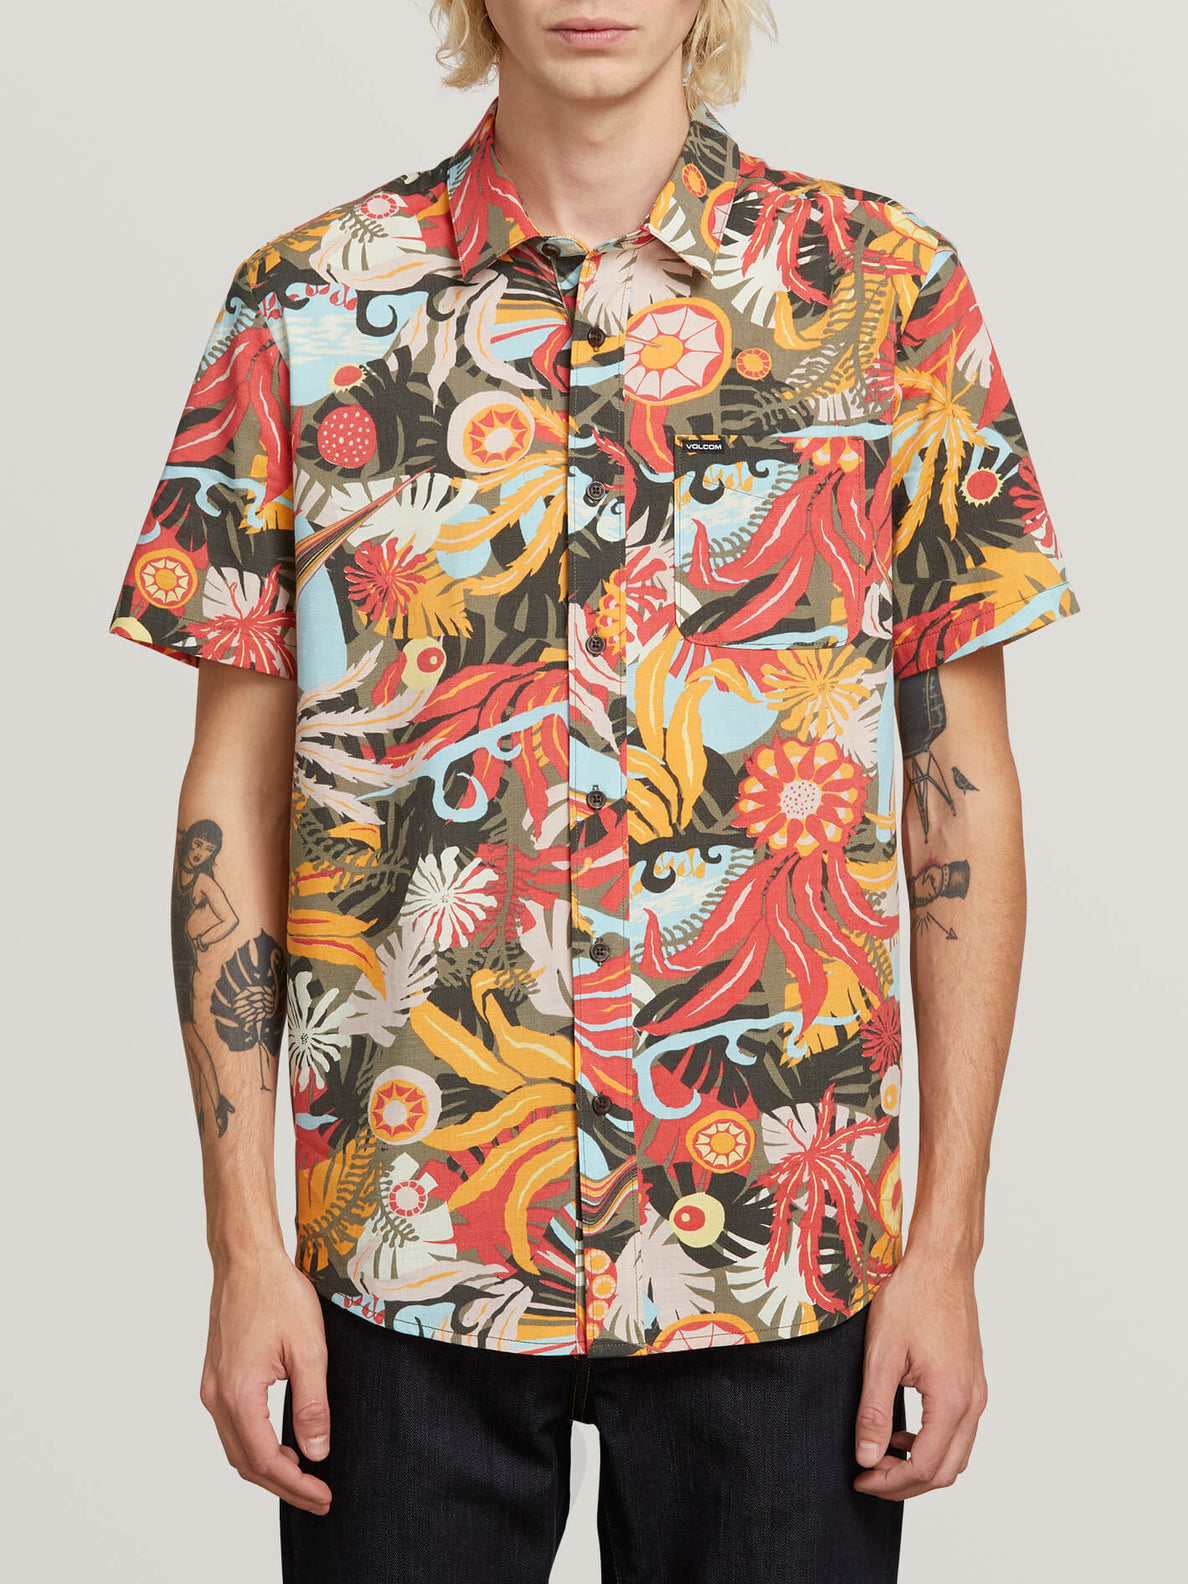 Psych Floral Short Sleeve Shirt In Army, Front View